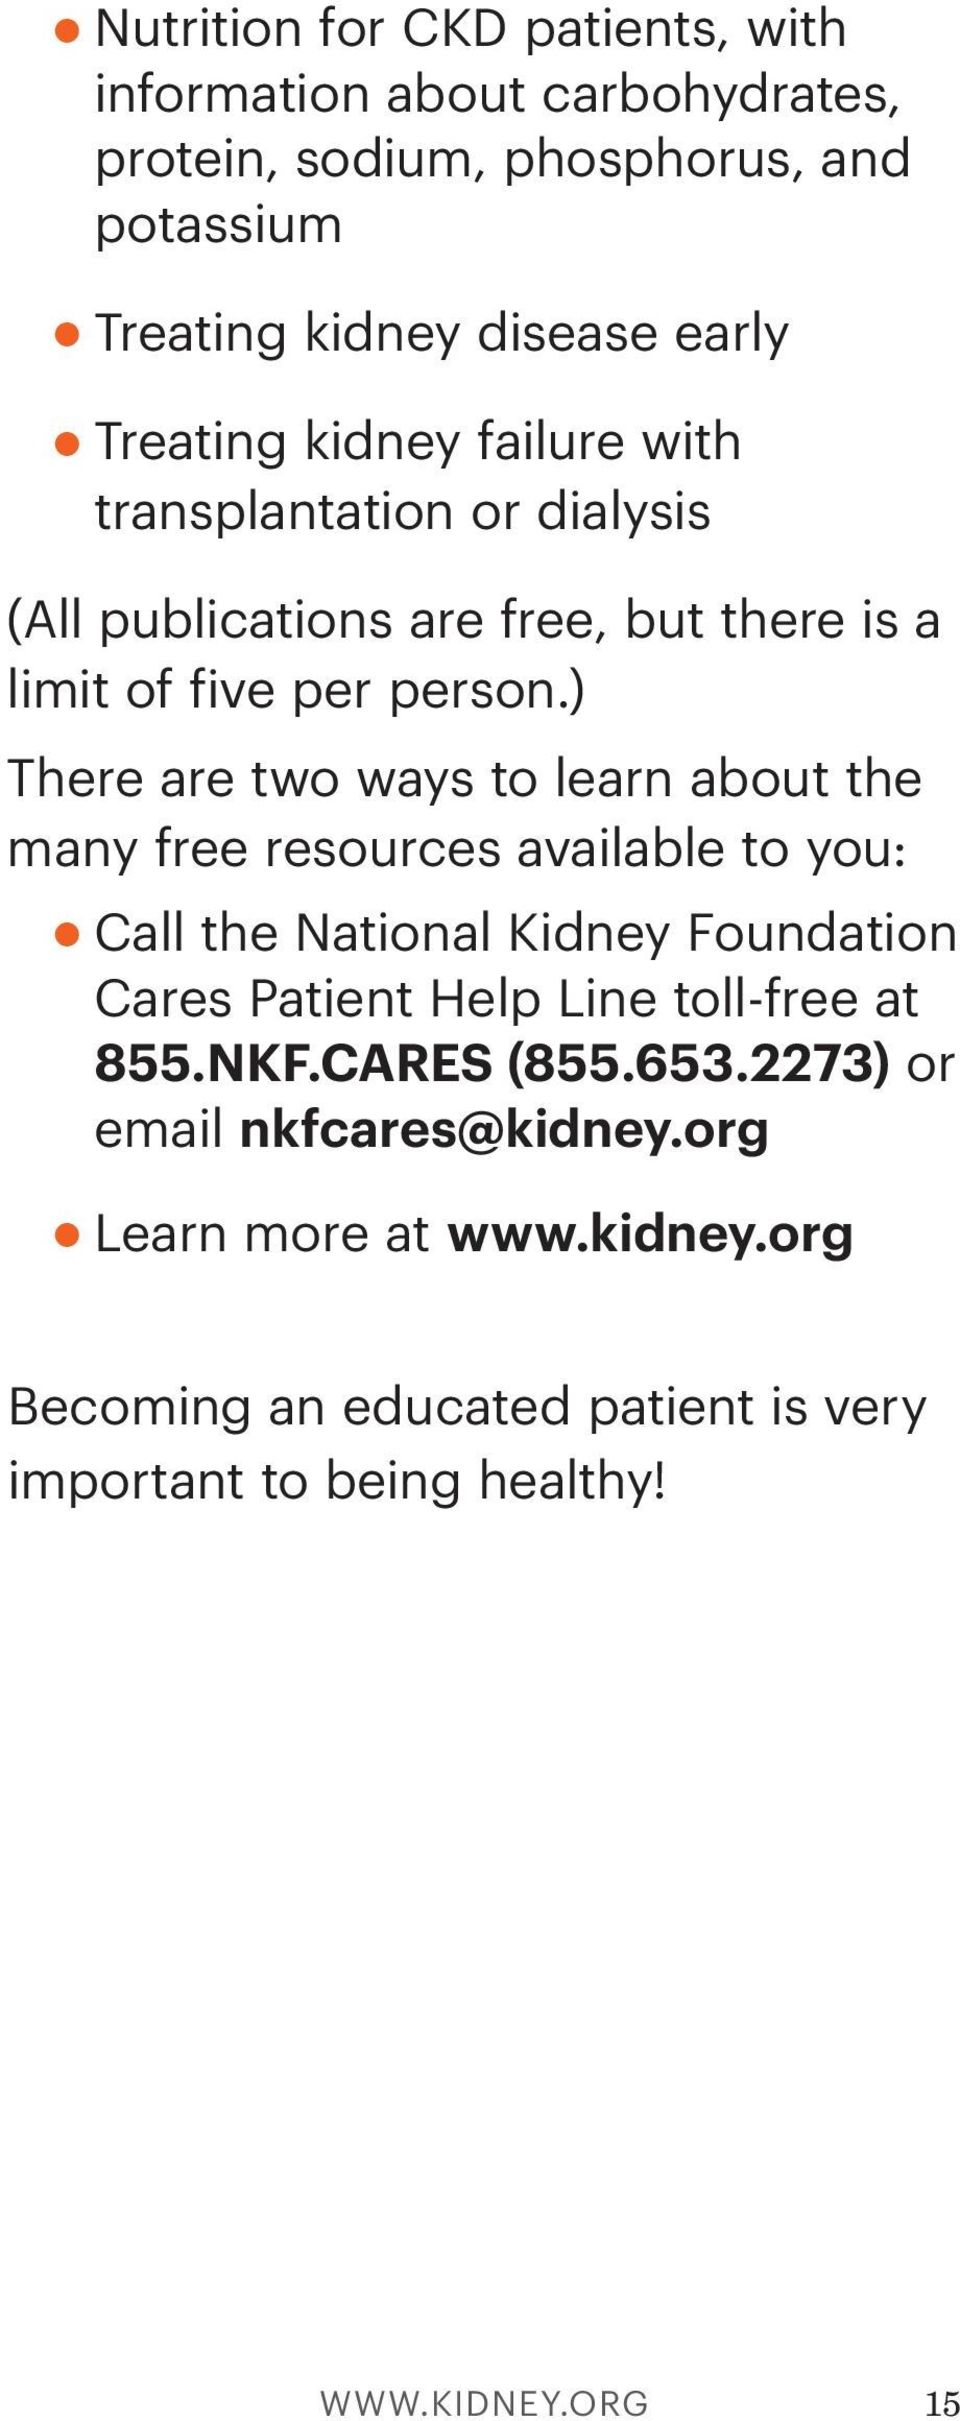 ) There are two ways to learn about the many free resources available to you: Call the National Kidney Foundation Cares Patient Help Line